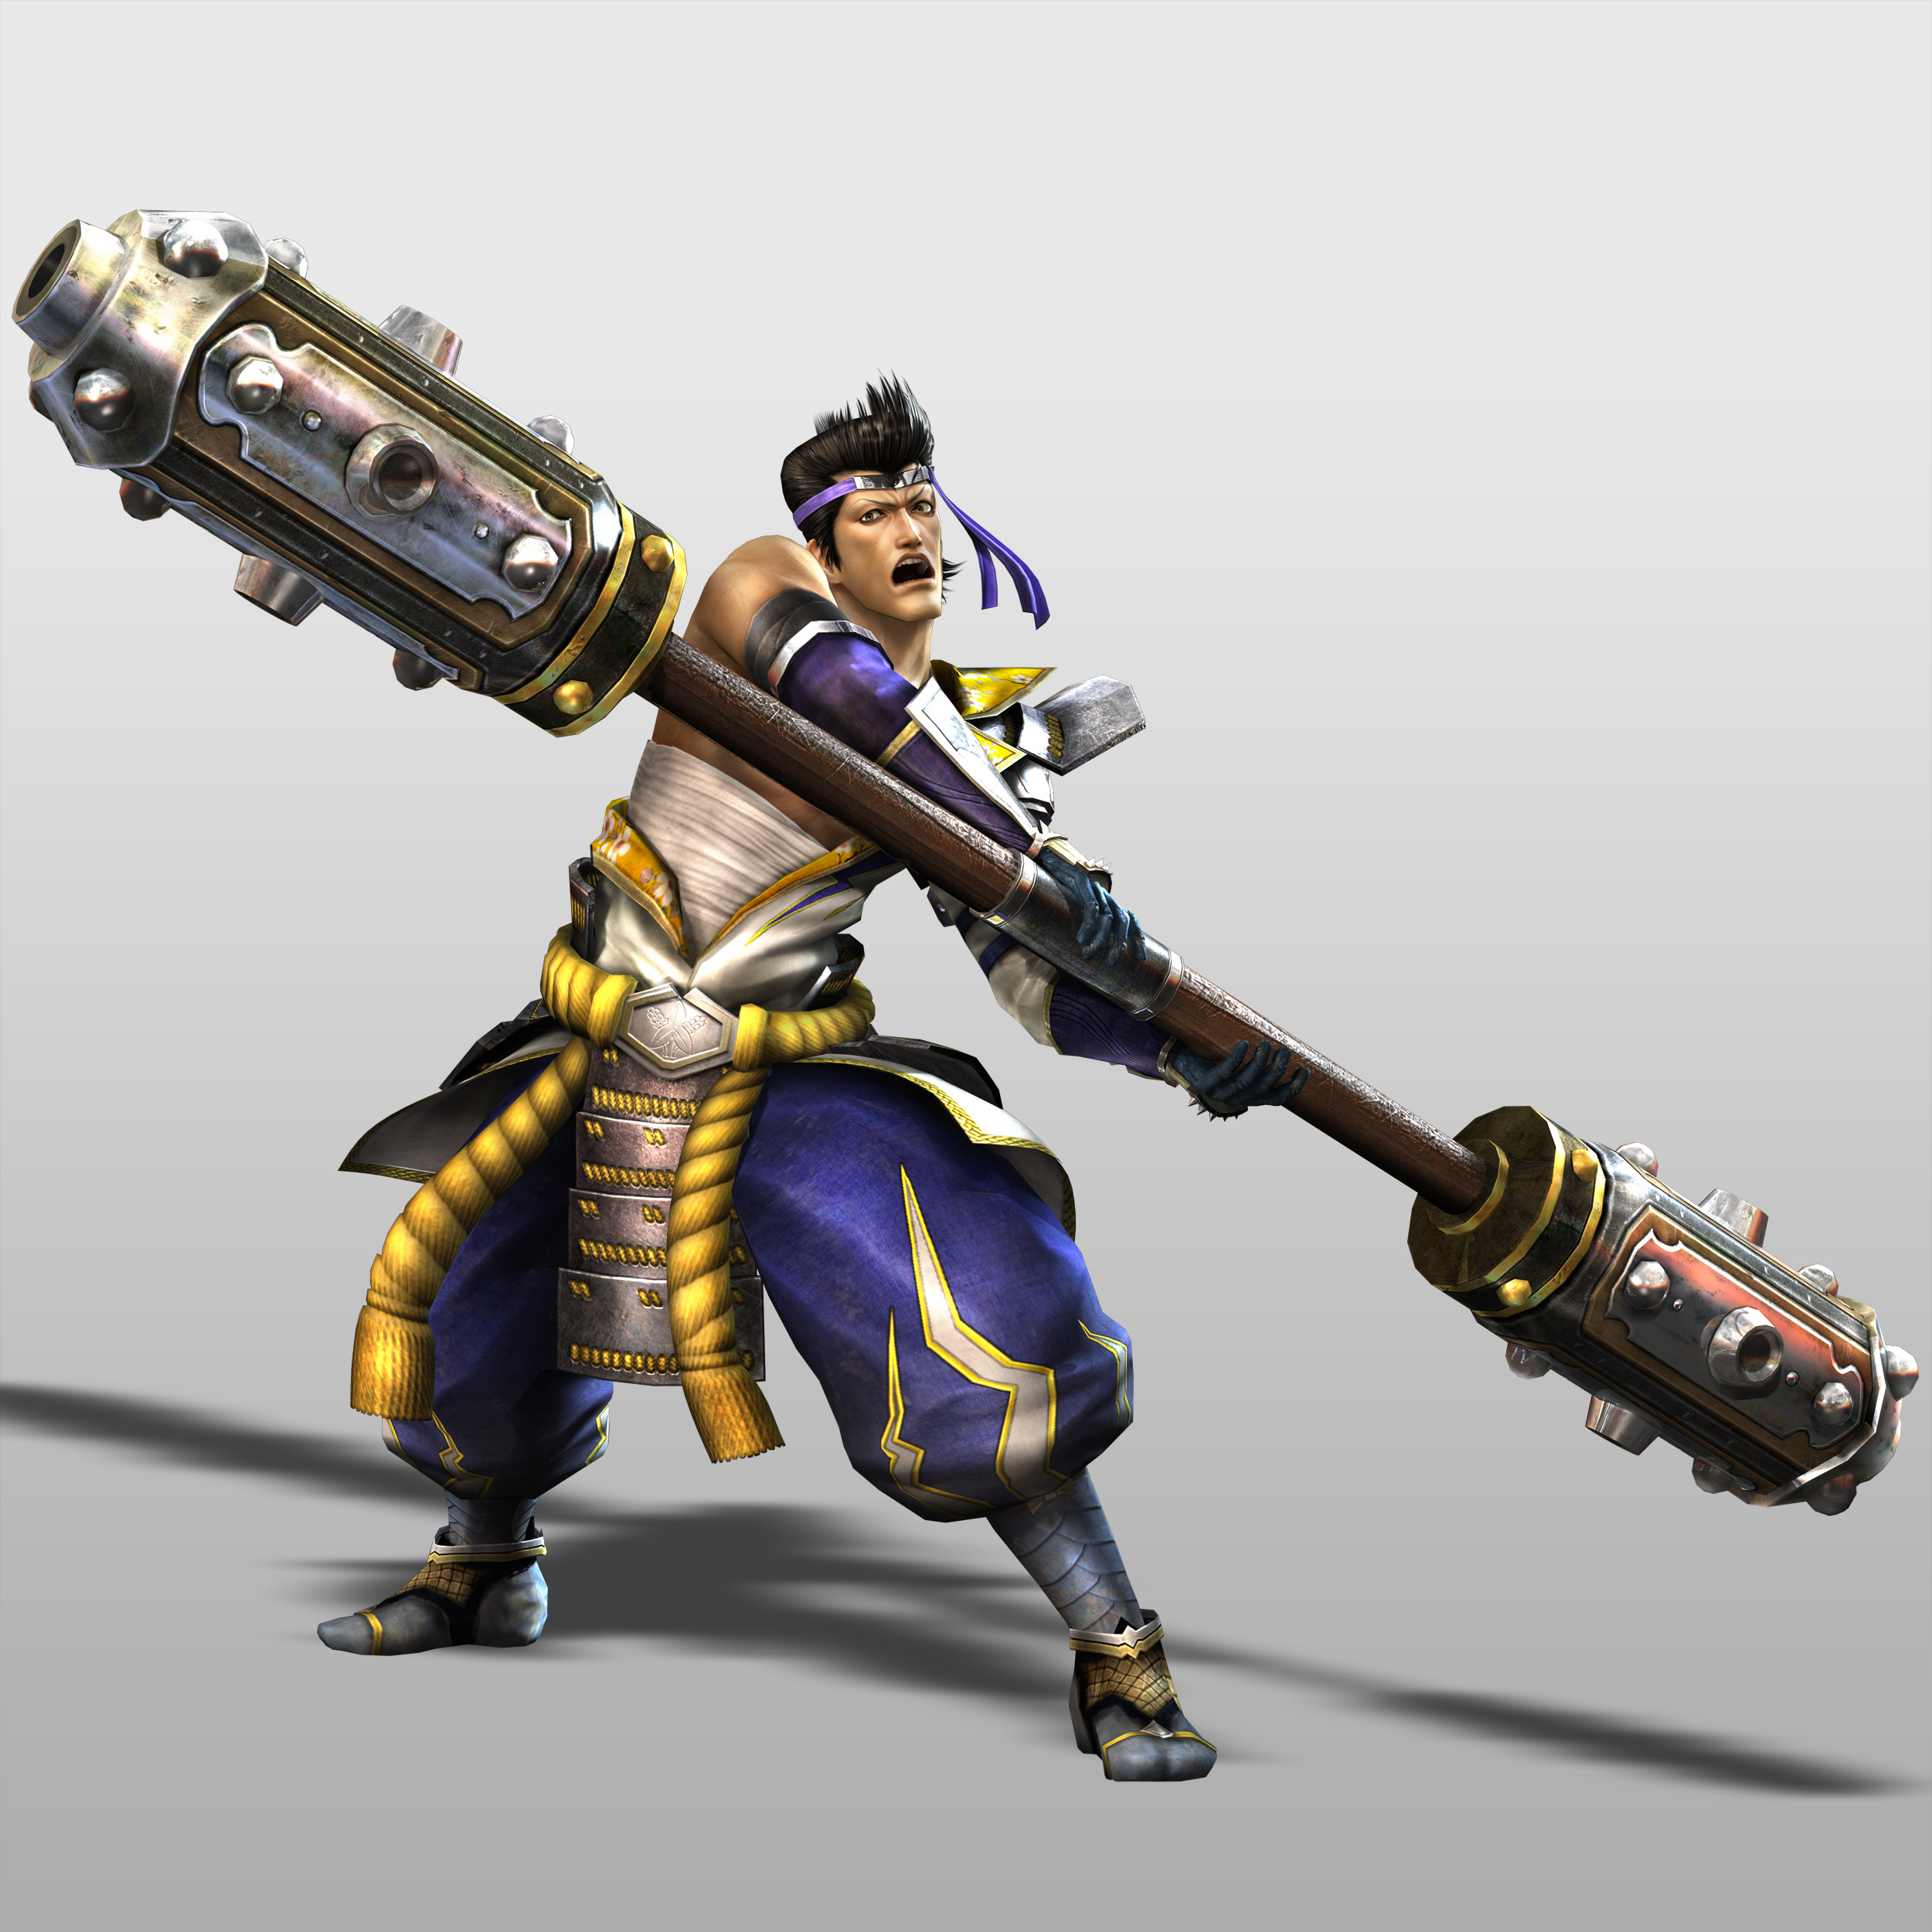 Warriors Orochi 3 Ultimate Weapons Big Star: Masanori Fukushima